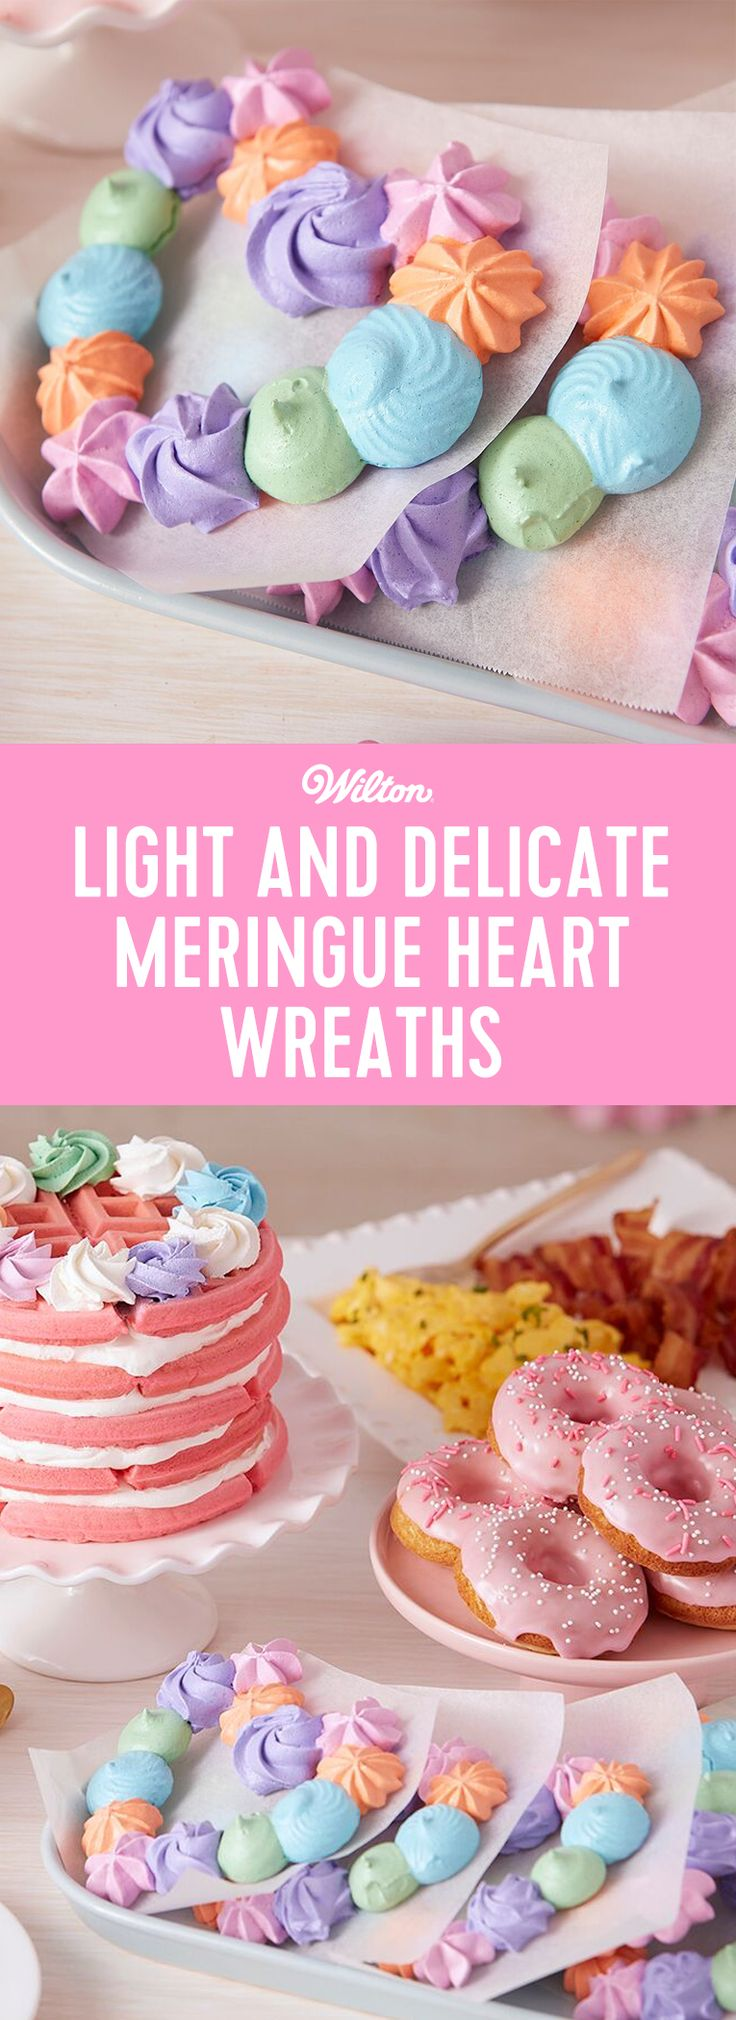 These Light and Delicate Meringue Heart Wreaths are a wonderful brunch dessert…they pair nicely with a cup of tea and they're a cute and fun way to celebrate your favorite gal pals! Made with a combination of decorating tips and icing colors, these cookies give you a little taste of something sweet without weighing you down. #wiltoncakes #meringues #meringuecookies #meringuewreath #valentinesday #valentines #galentines #cookies #cookieideas